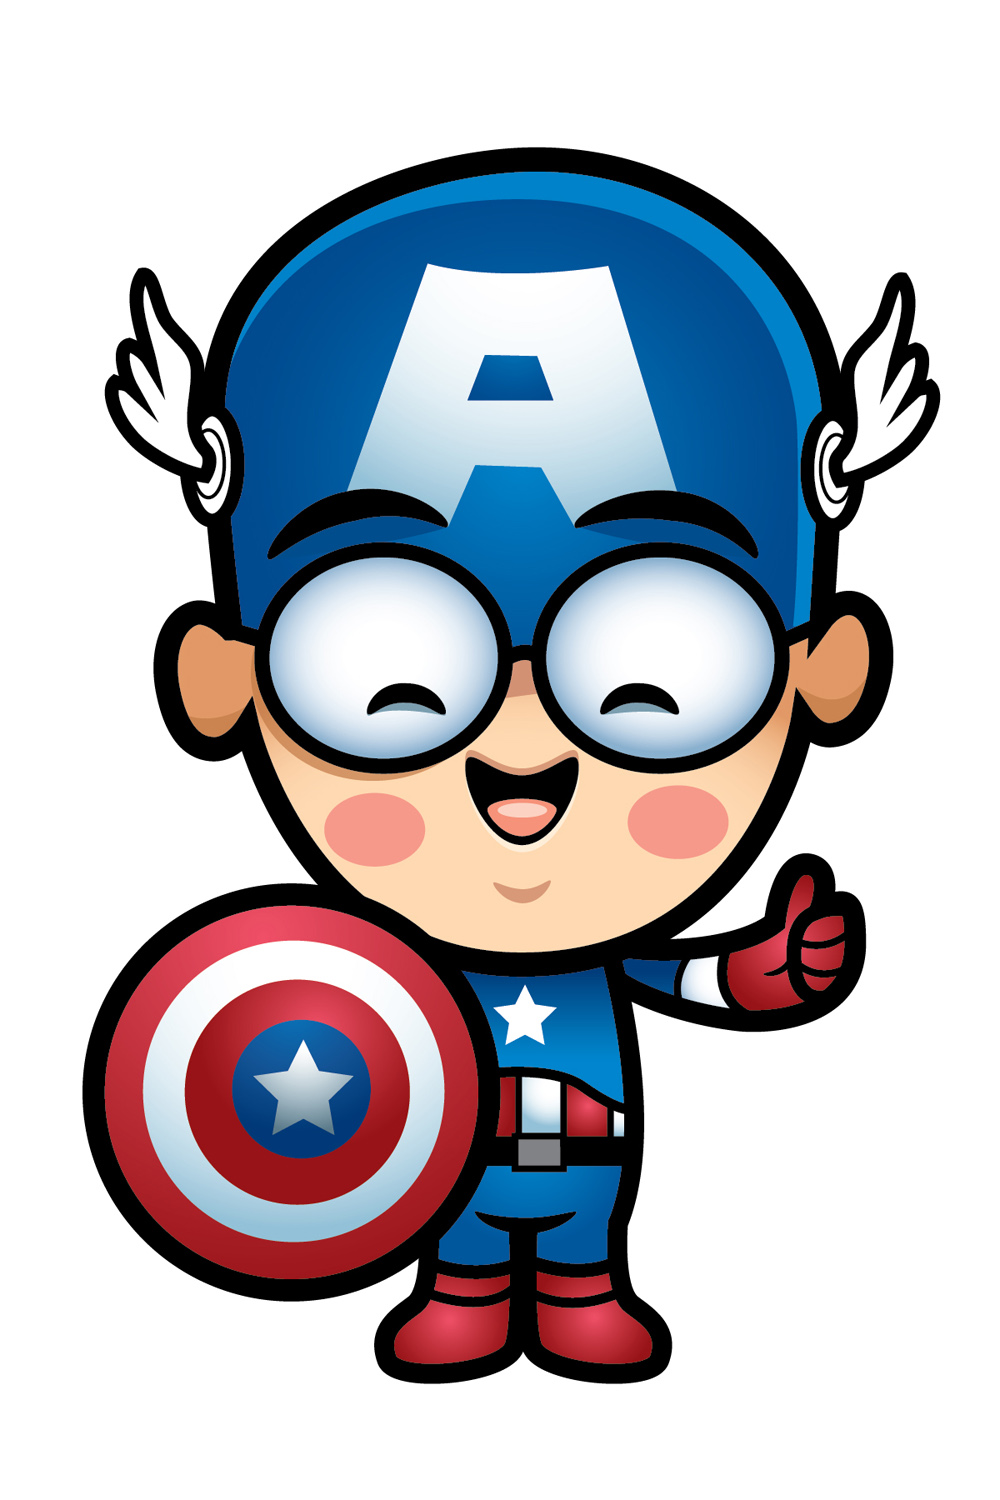 Captain America clipart #7, Download drawings